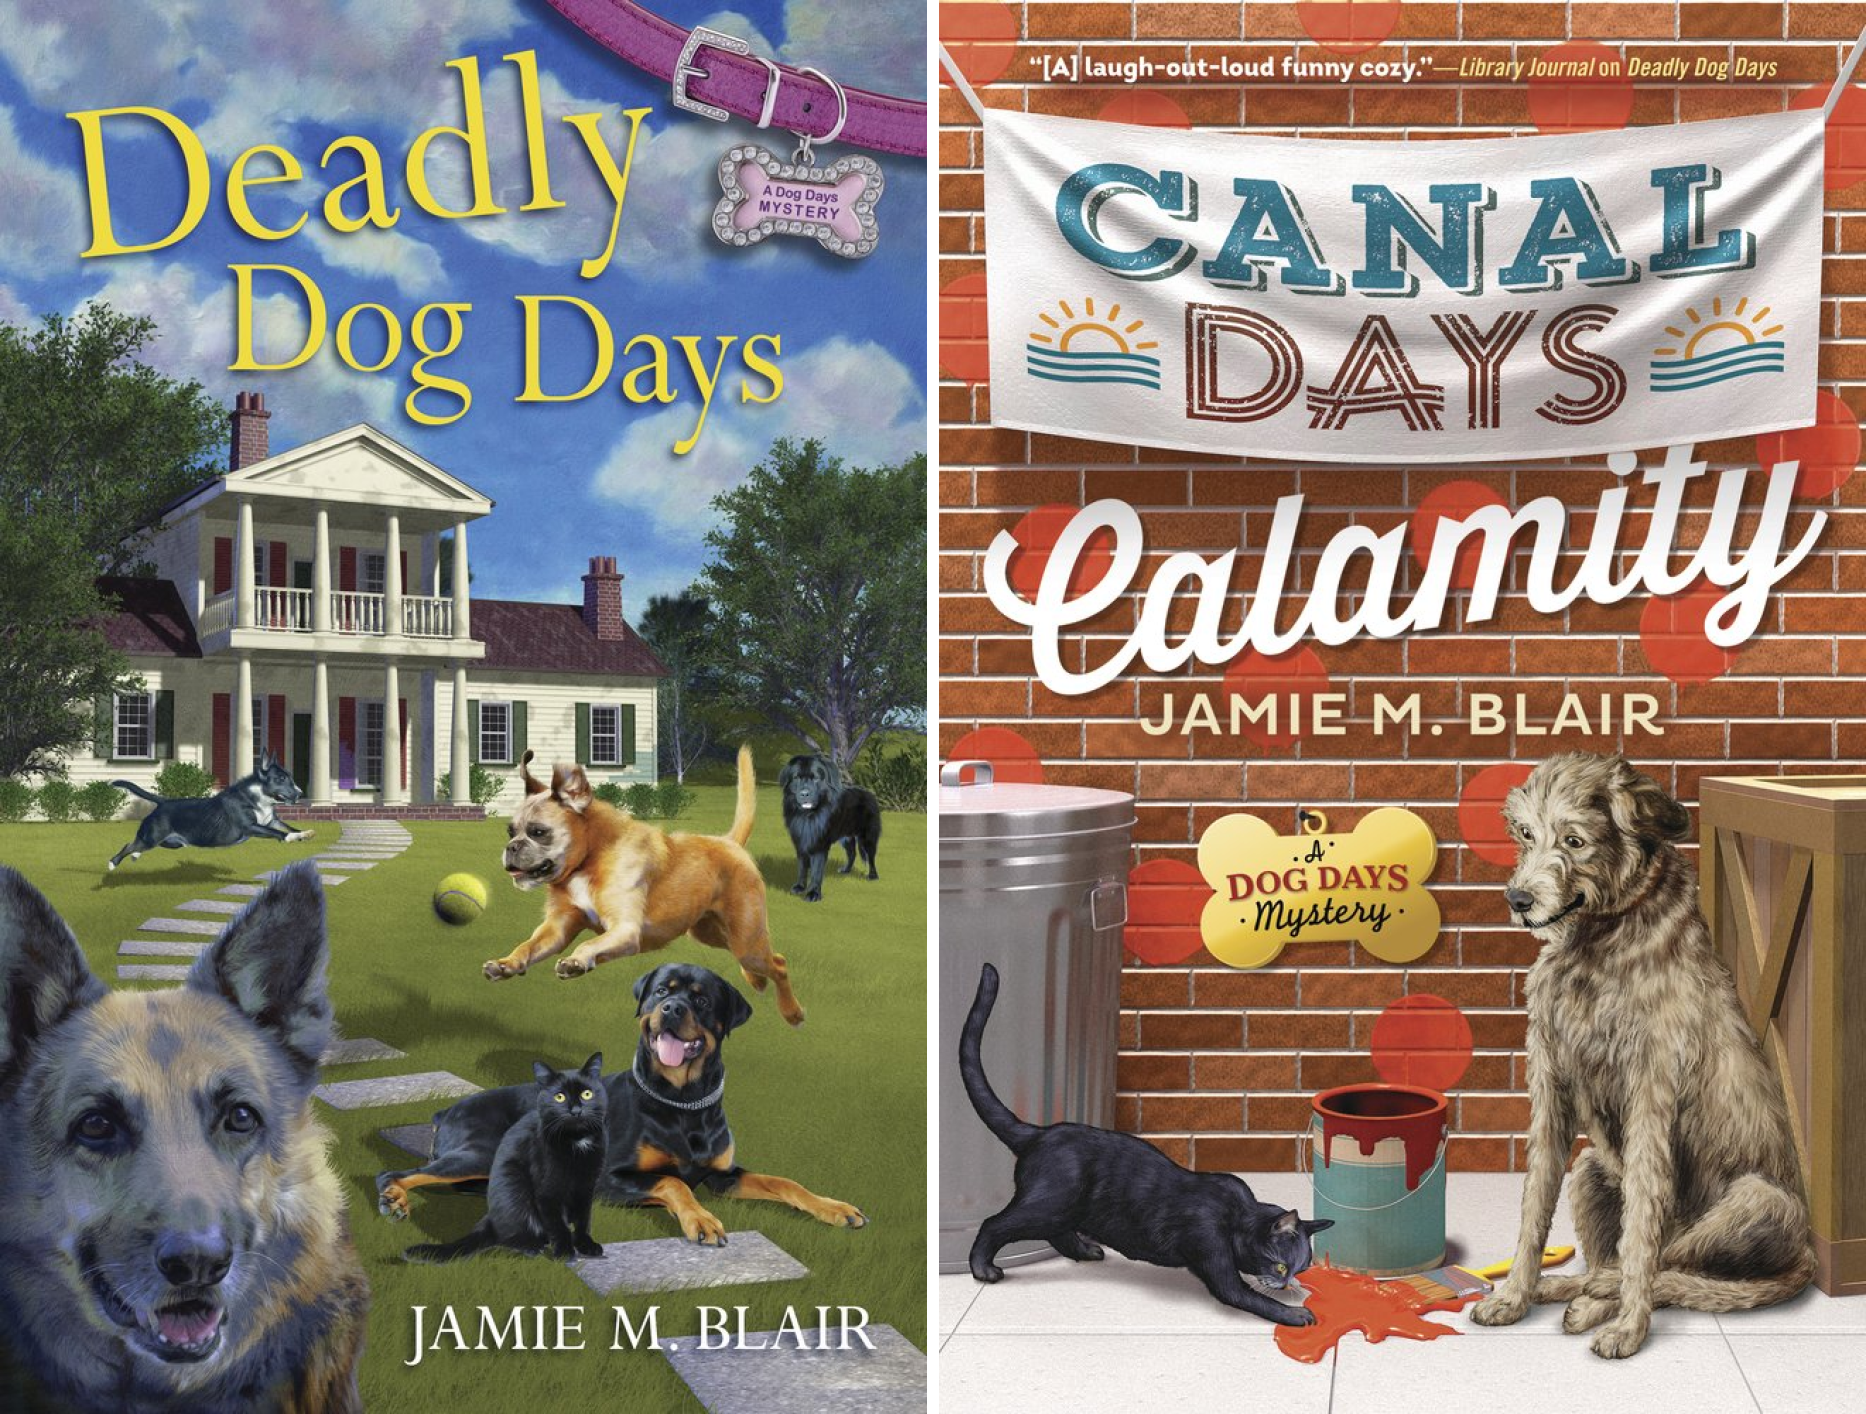 A Dog Days Mystery (2 Book Series)